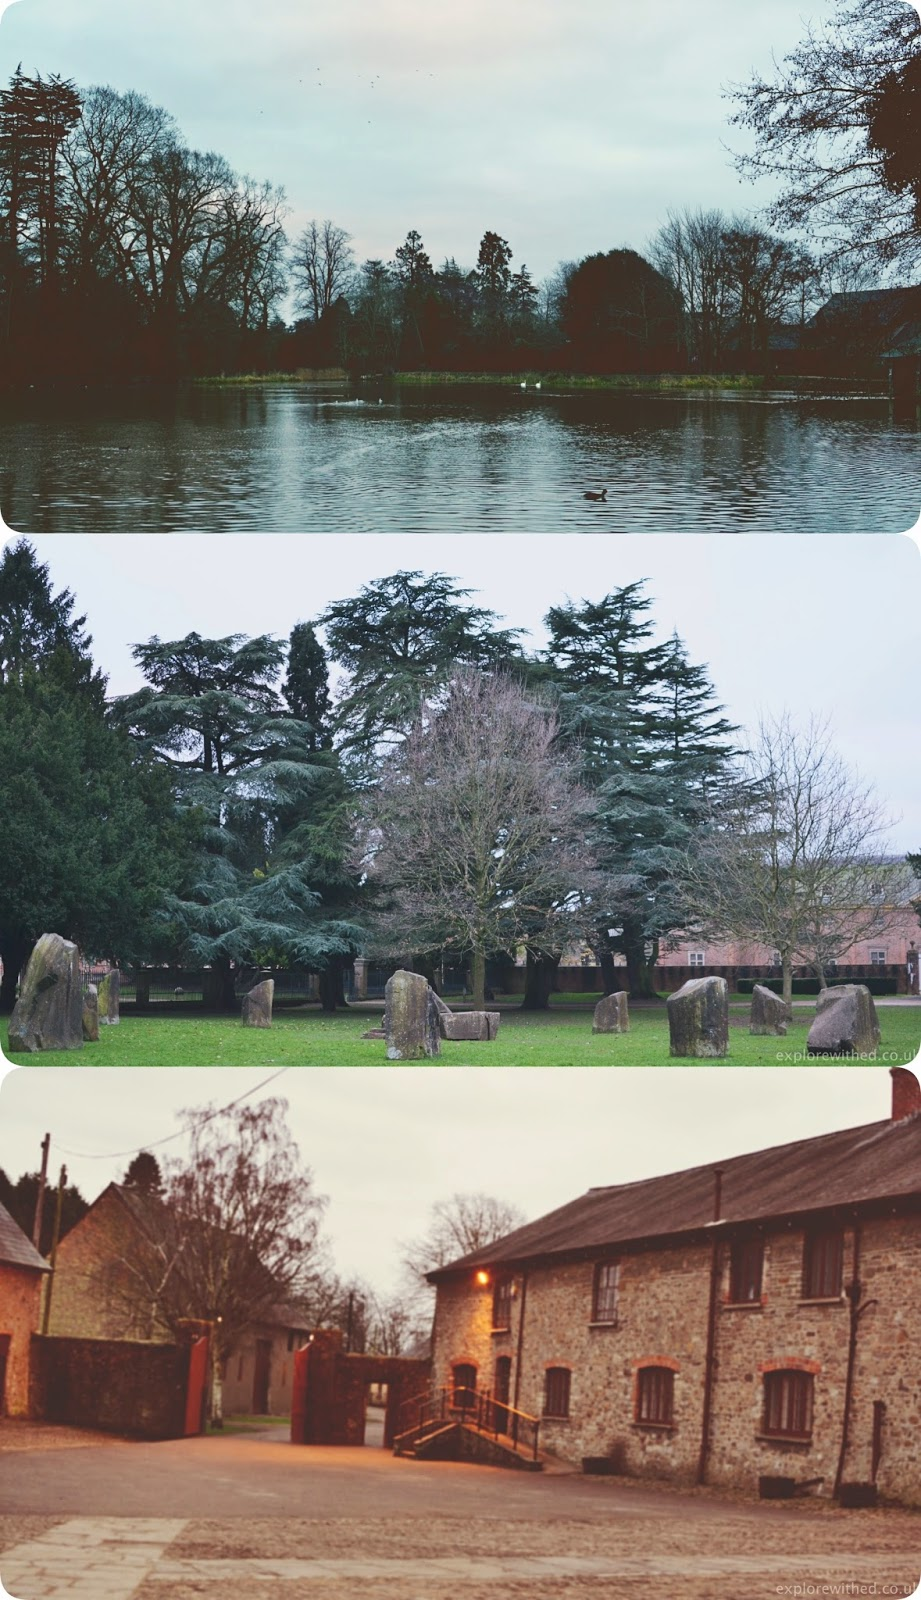 Vintage style pictures of Tredegar House and Gardens